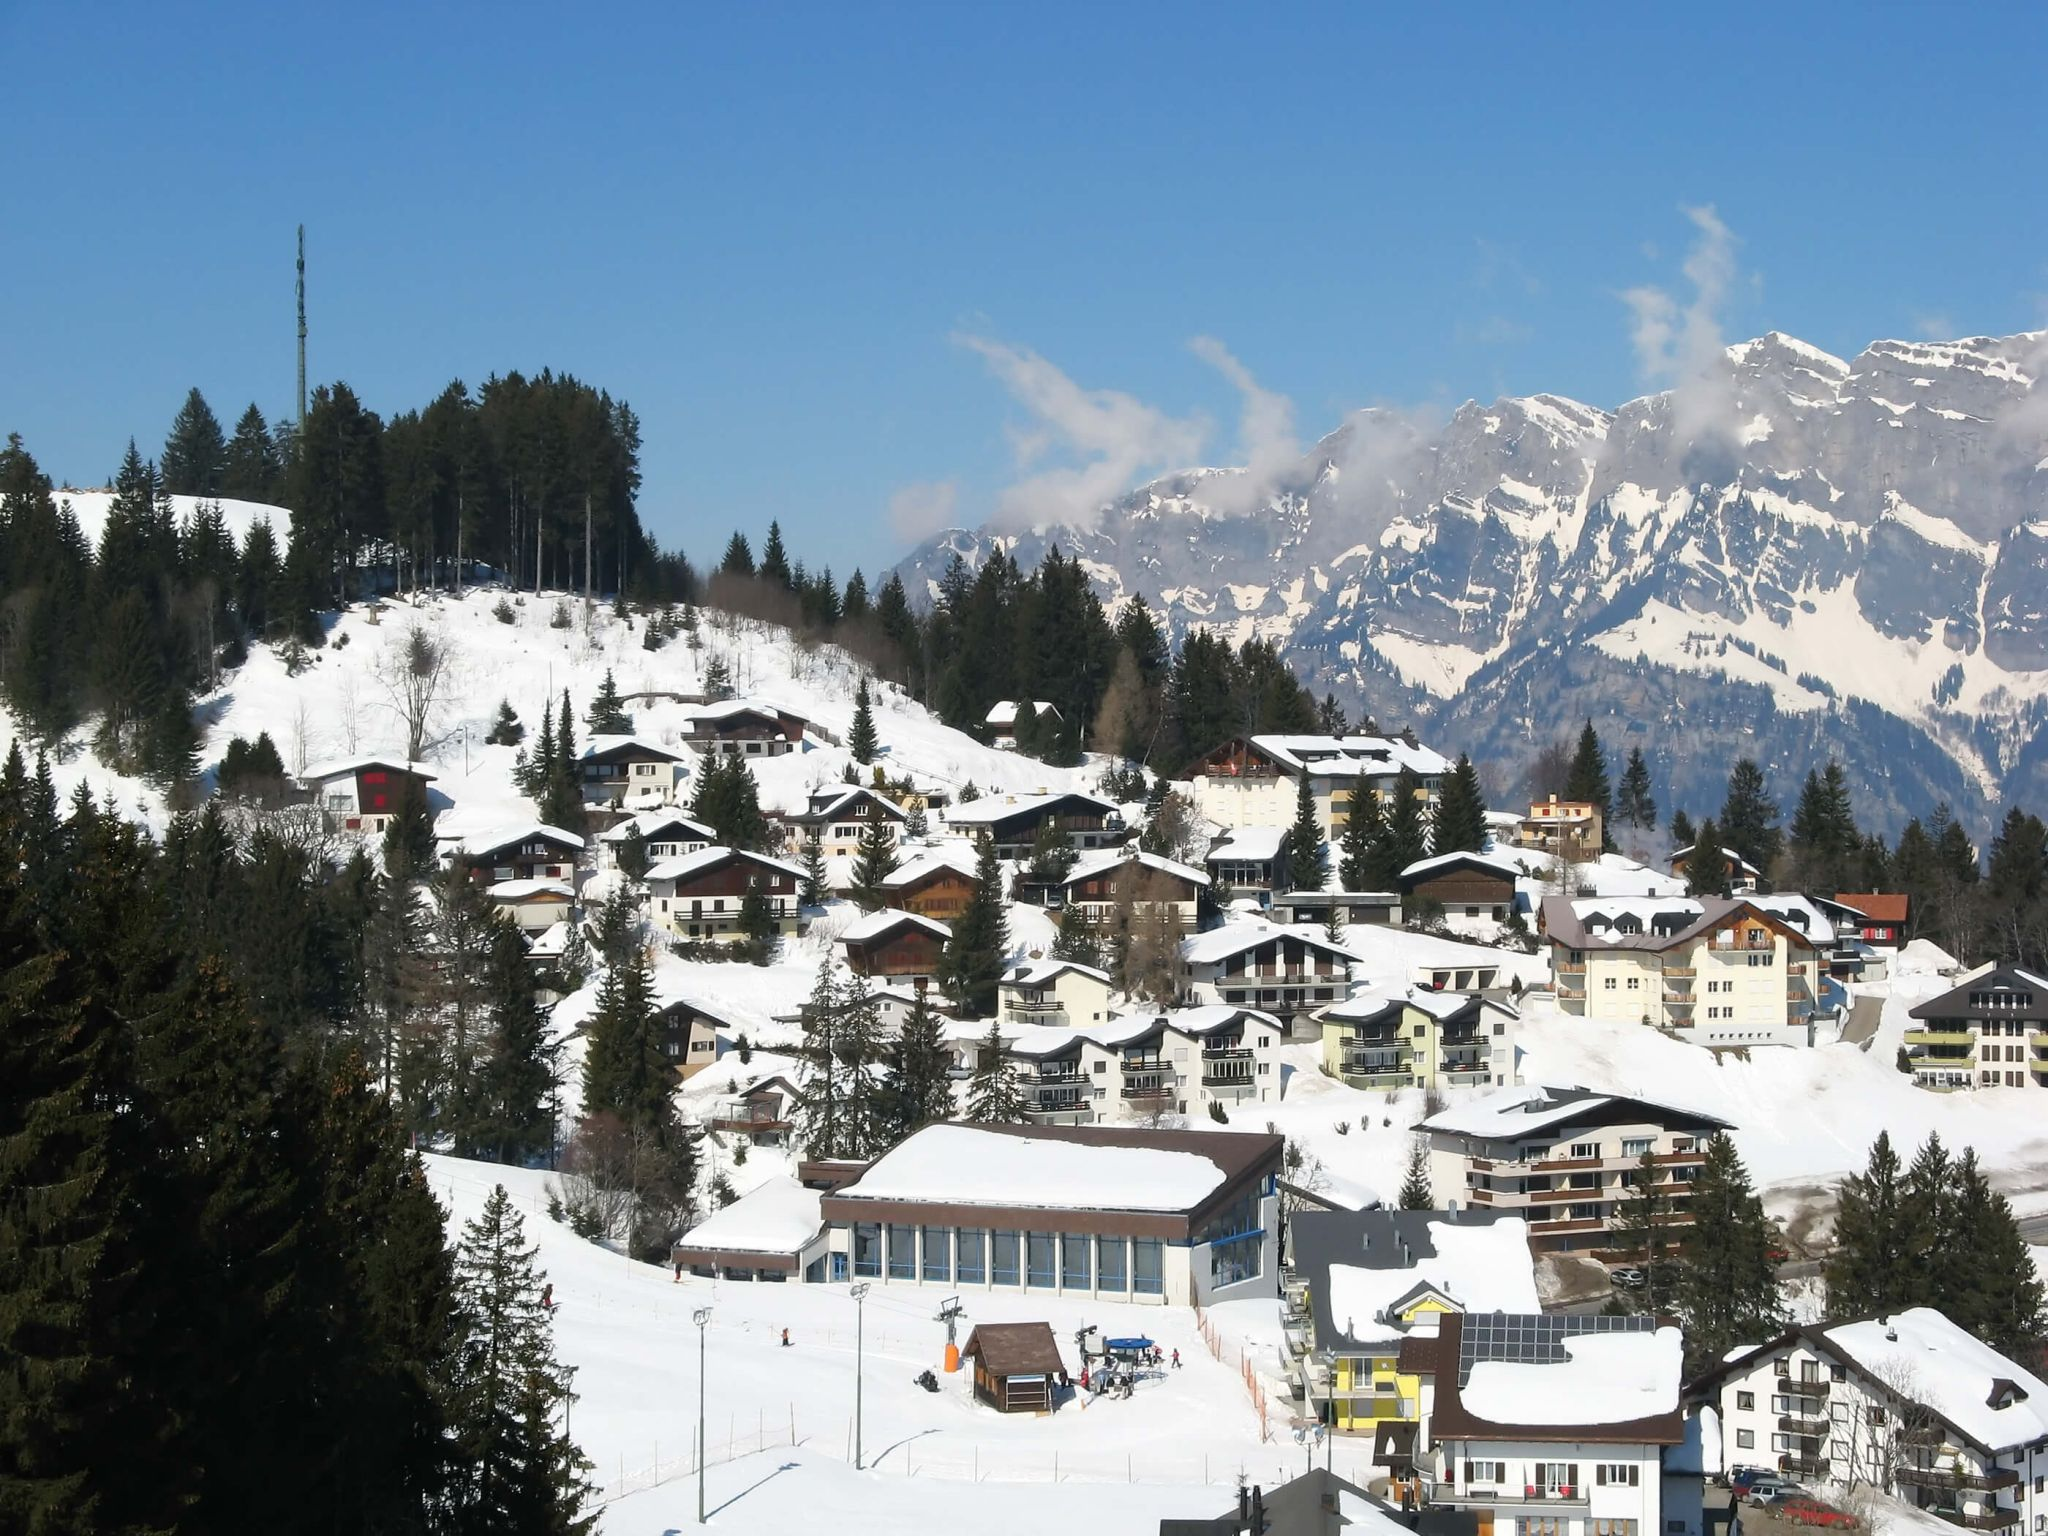 ski holiday with kids - an alpine town in the snow